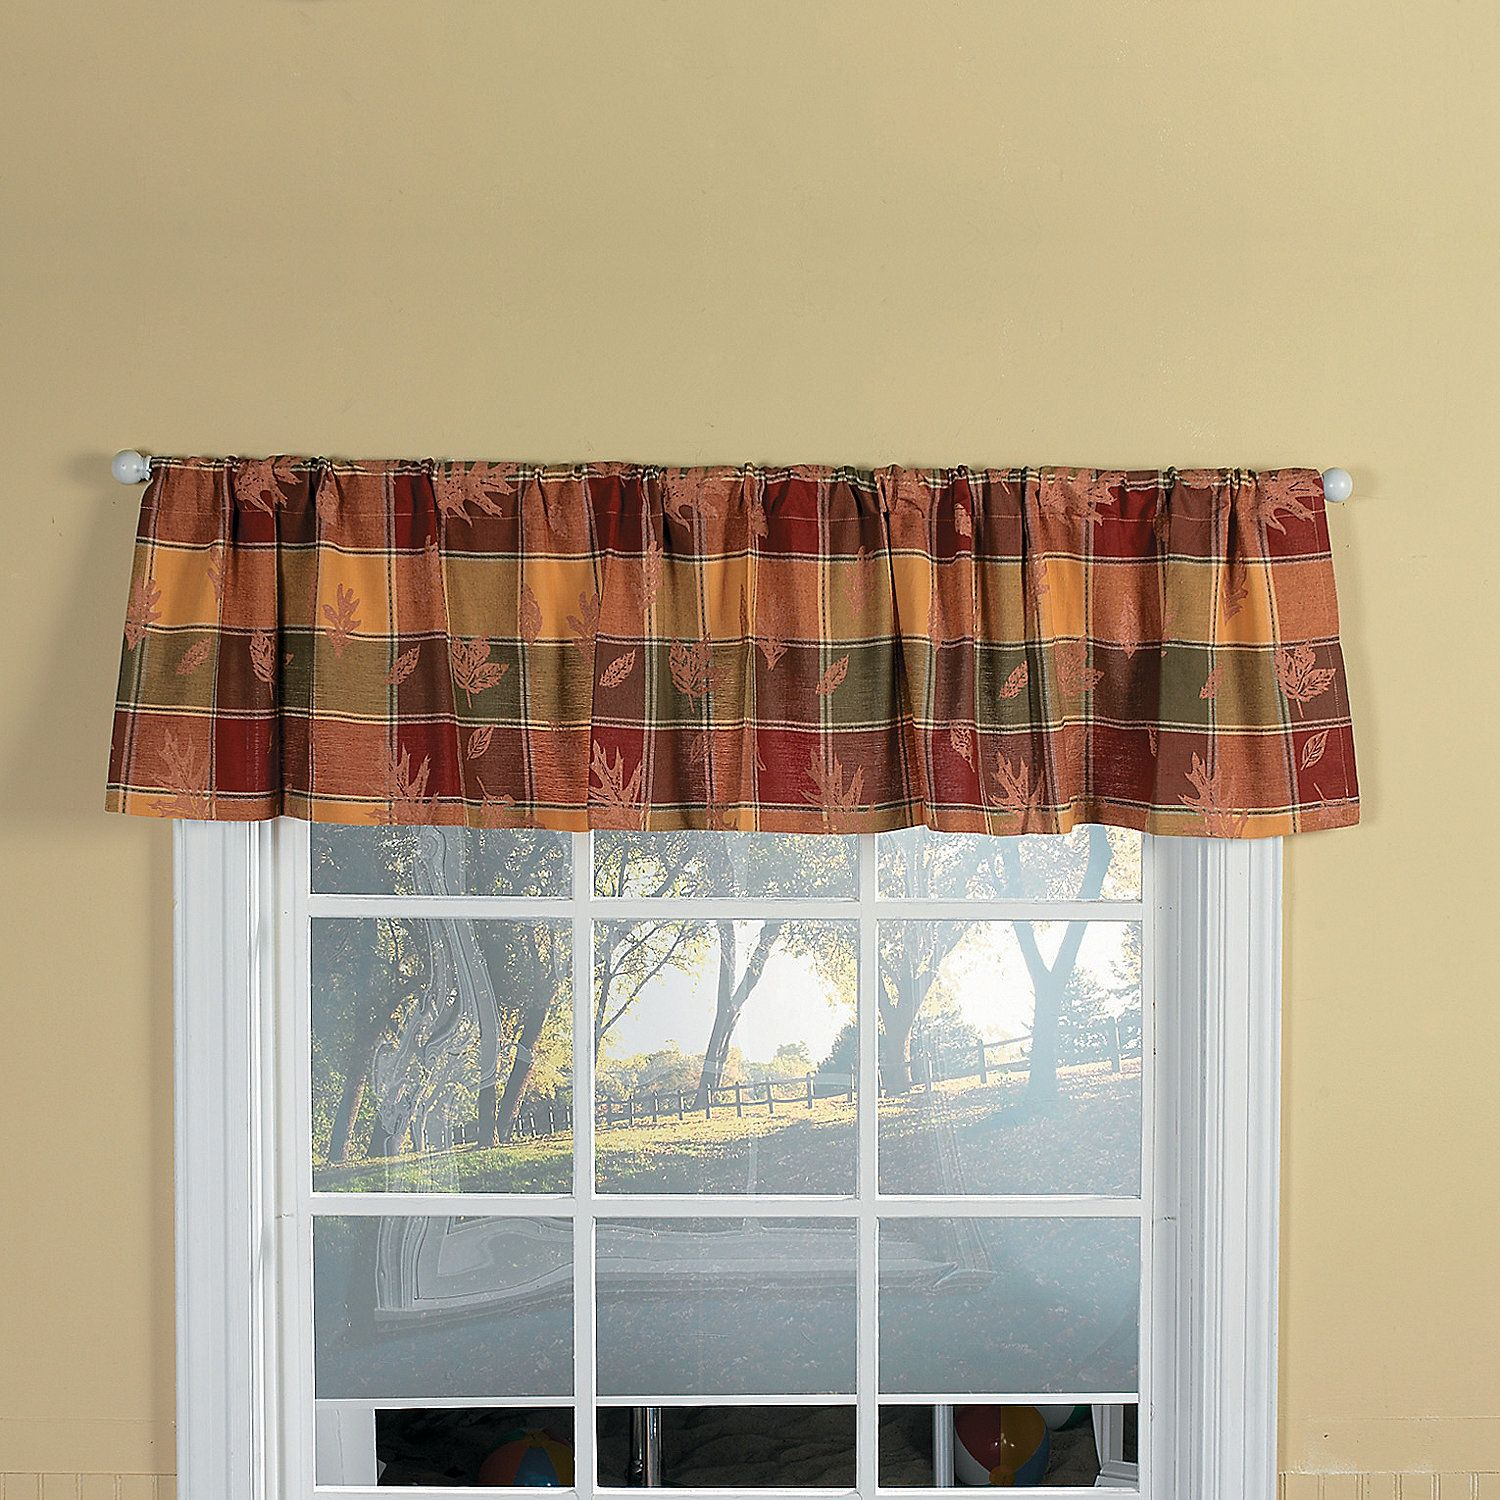 Fall Kitchen Valance Kitchen Valances Fall Kitchen Valance